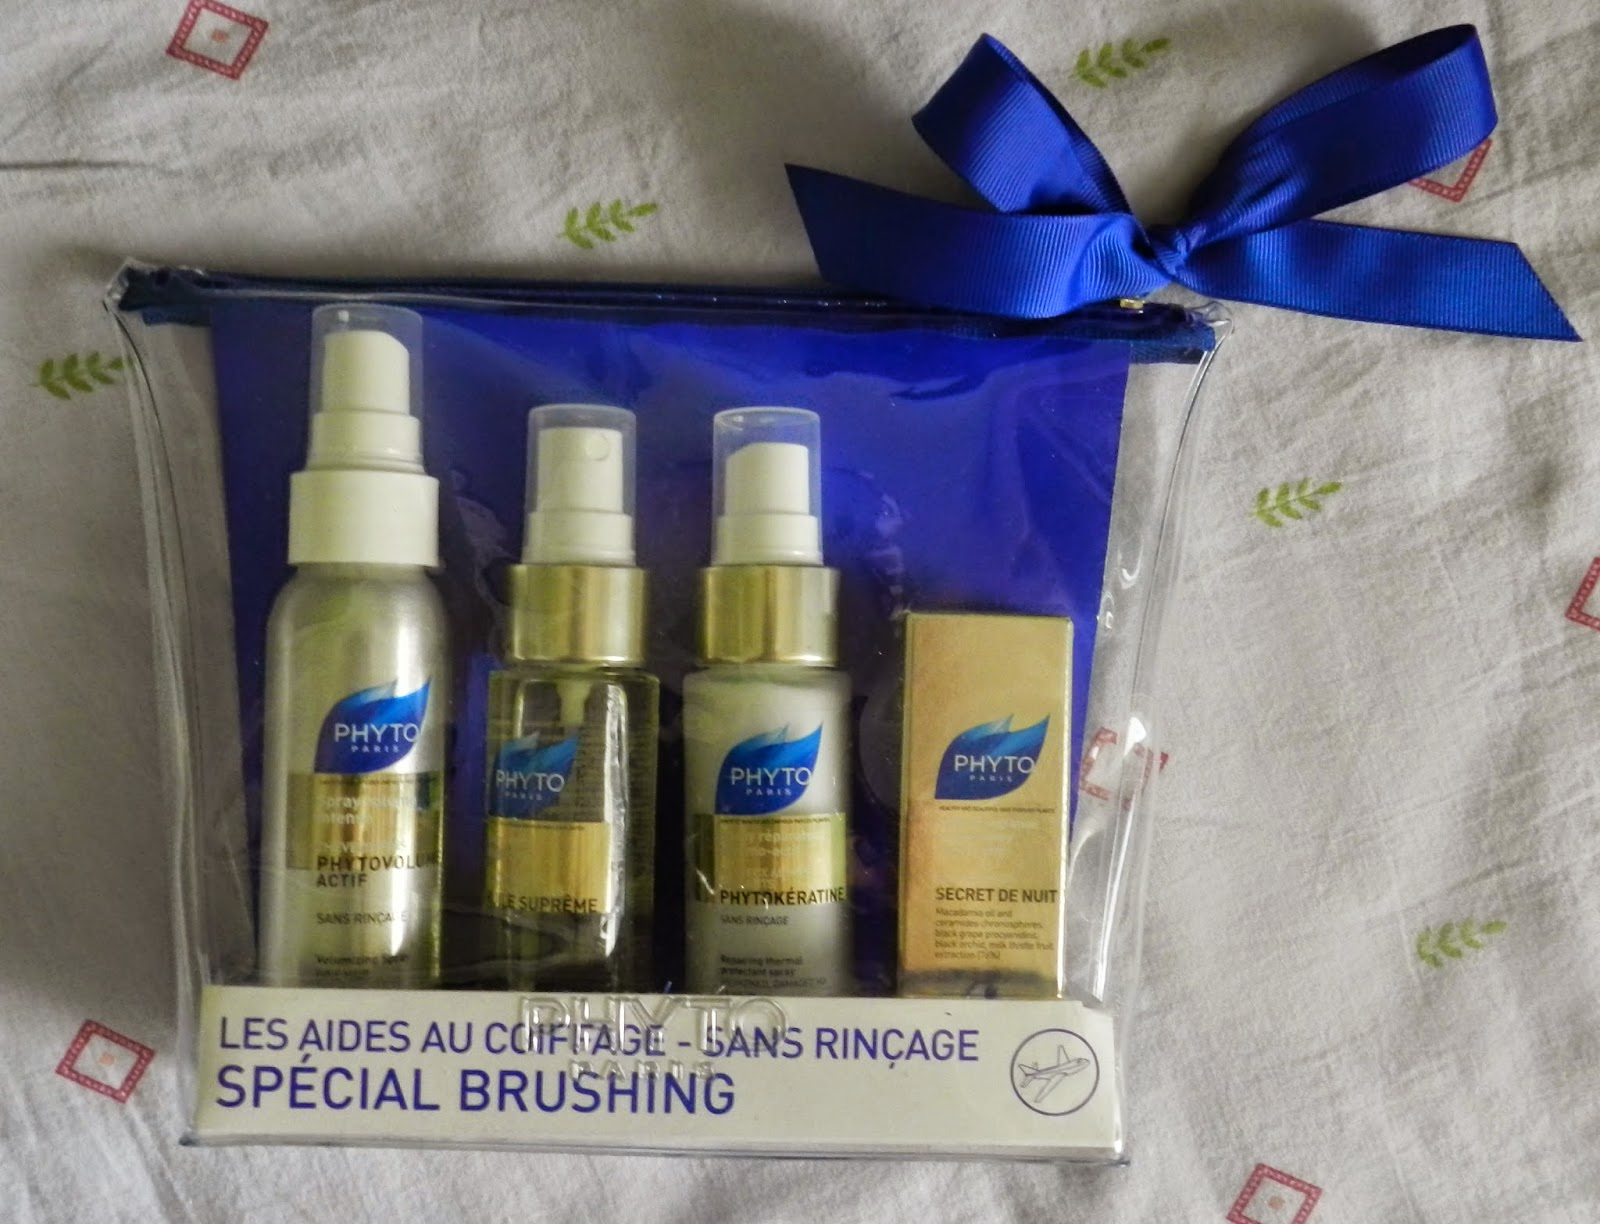 phyto special brushing kit